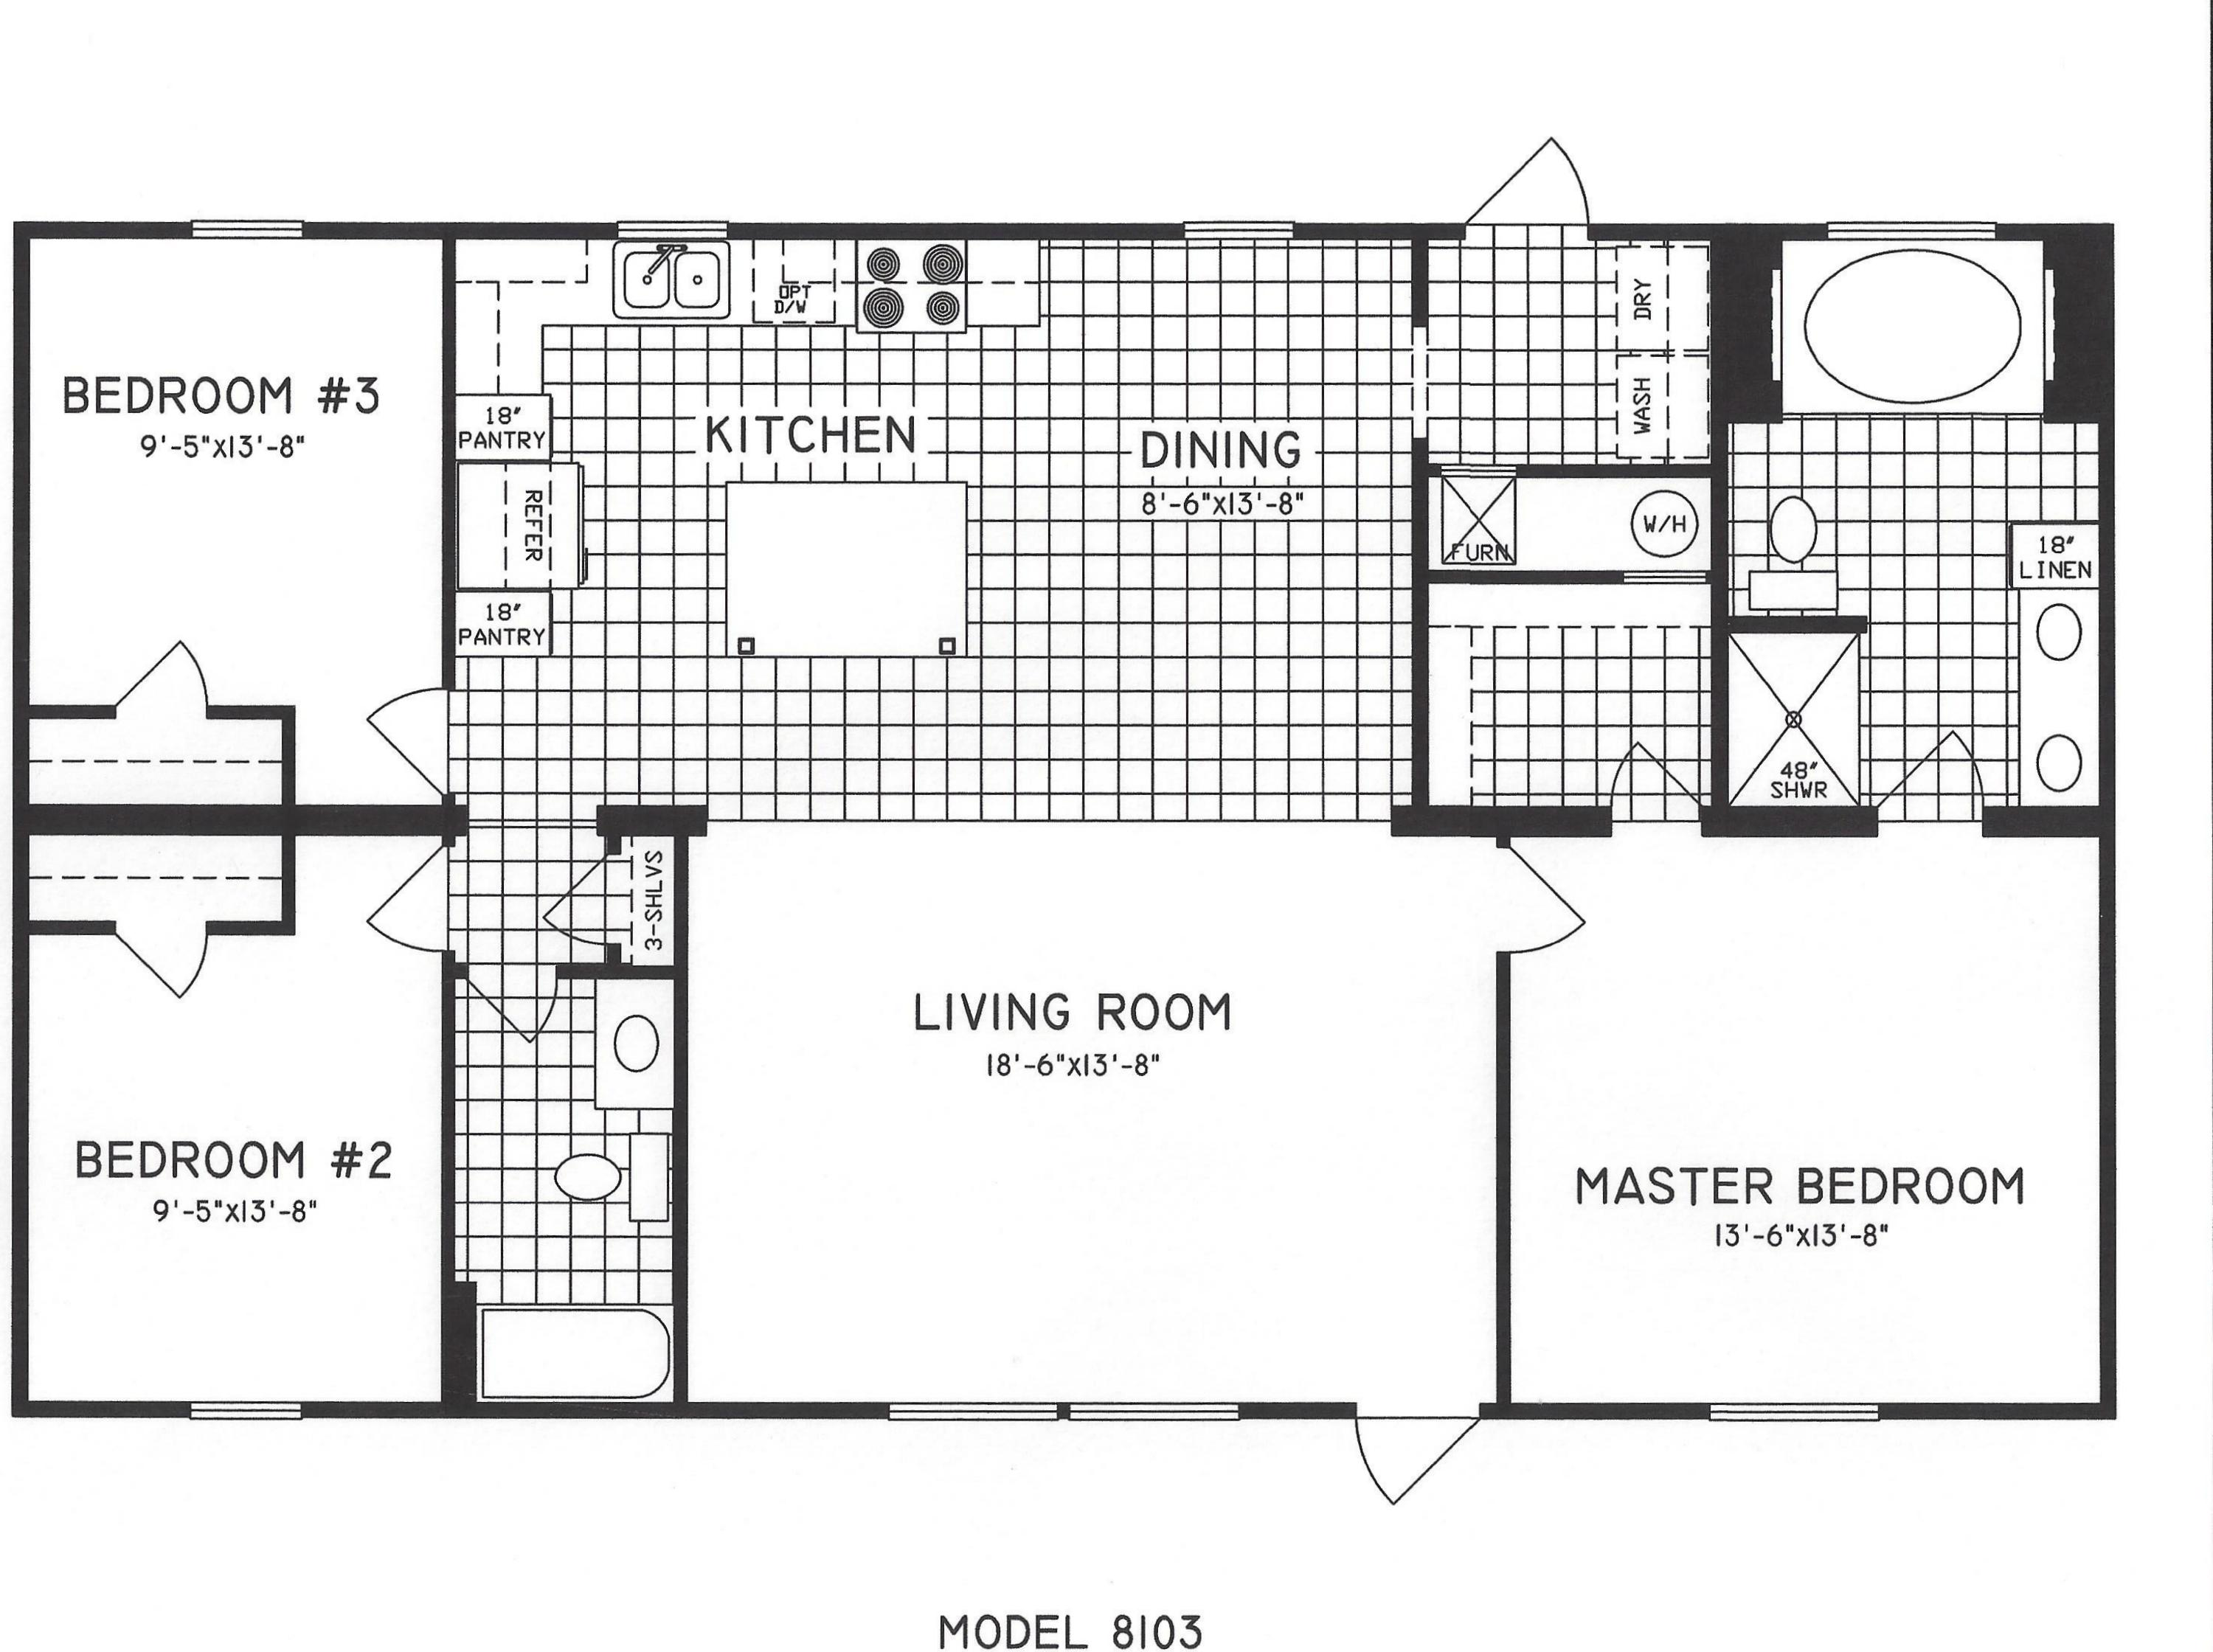 3 bedroom floor plan c 8103 hawks homes manufactured 3 bedroom open floor plan